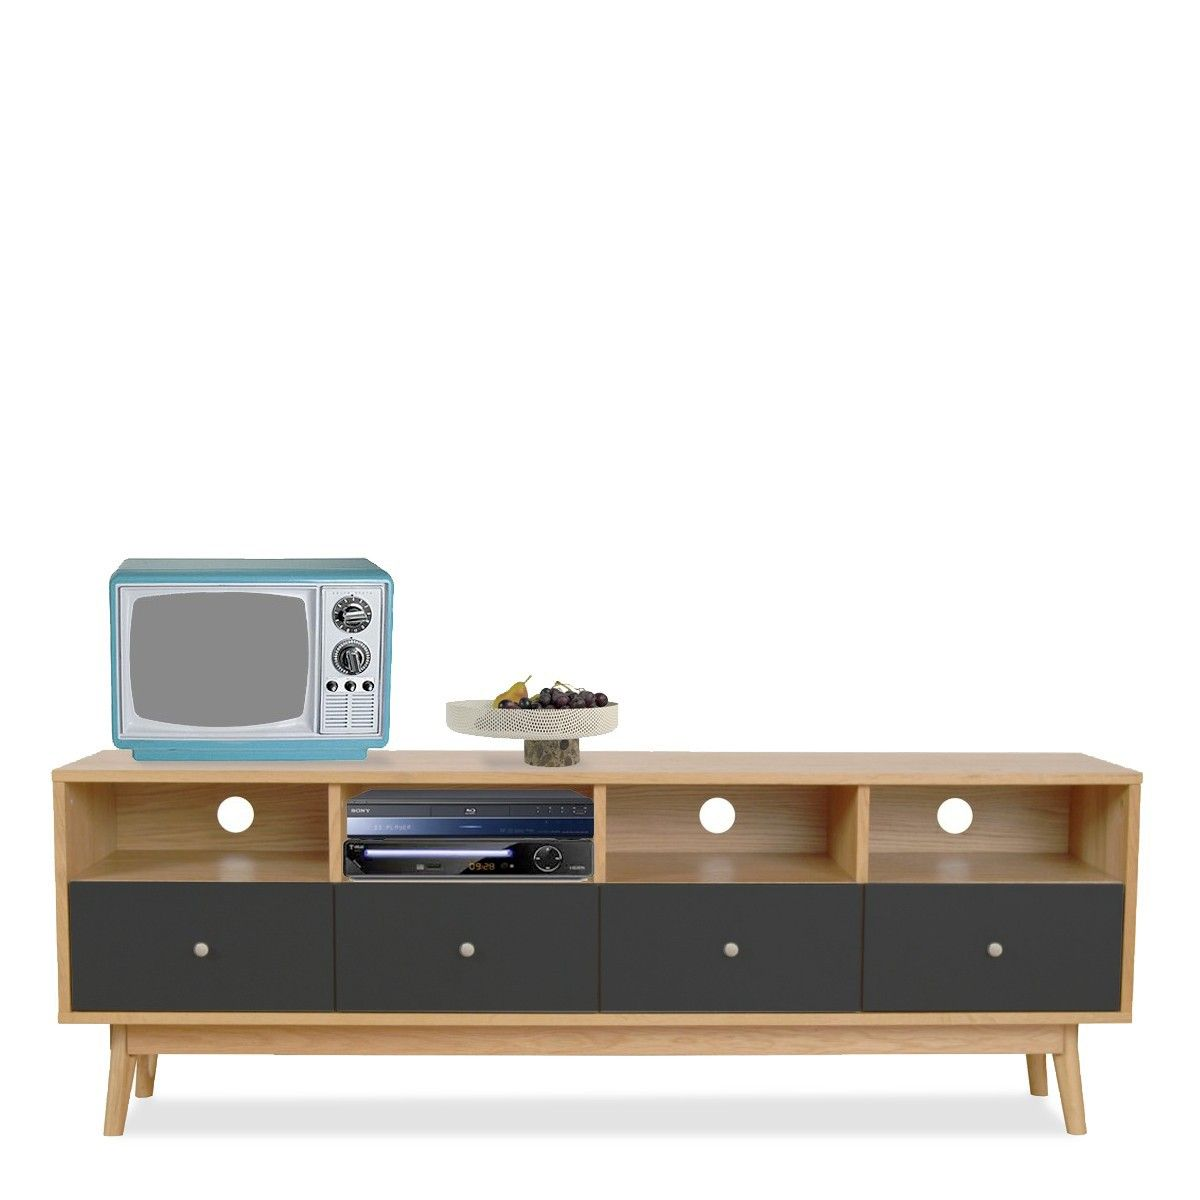 Meuble Tv Scandinave Anthracite Meuble Tv Design Scandinave 4 Tiroirs Skoll Gris Anthracite